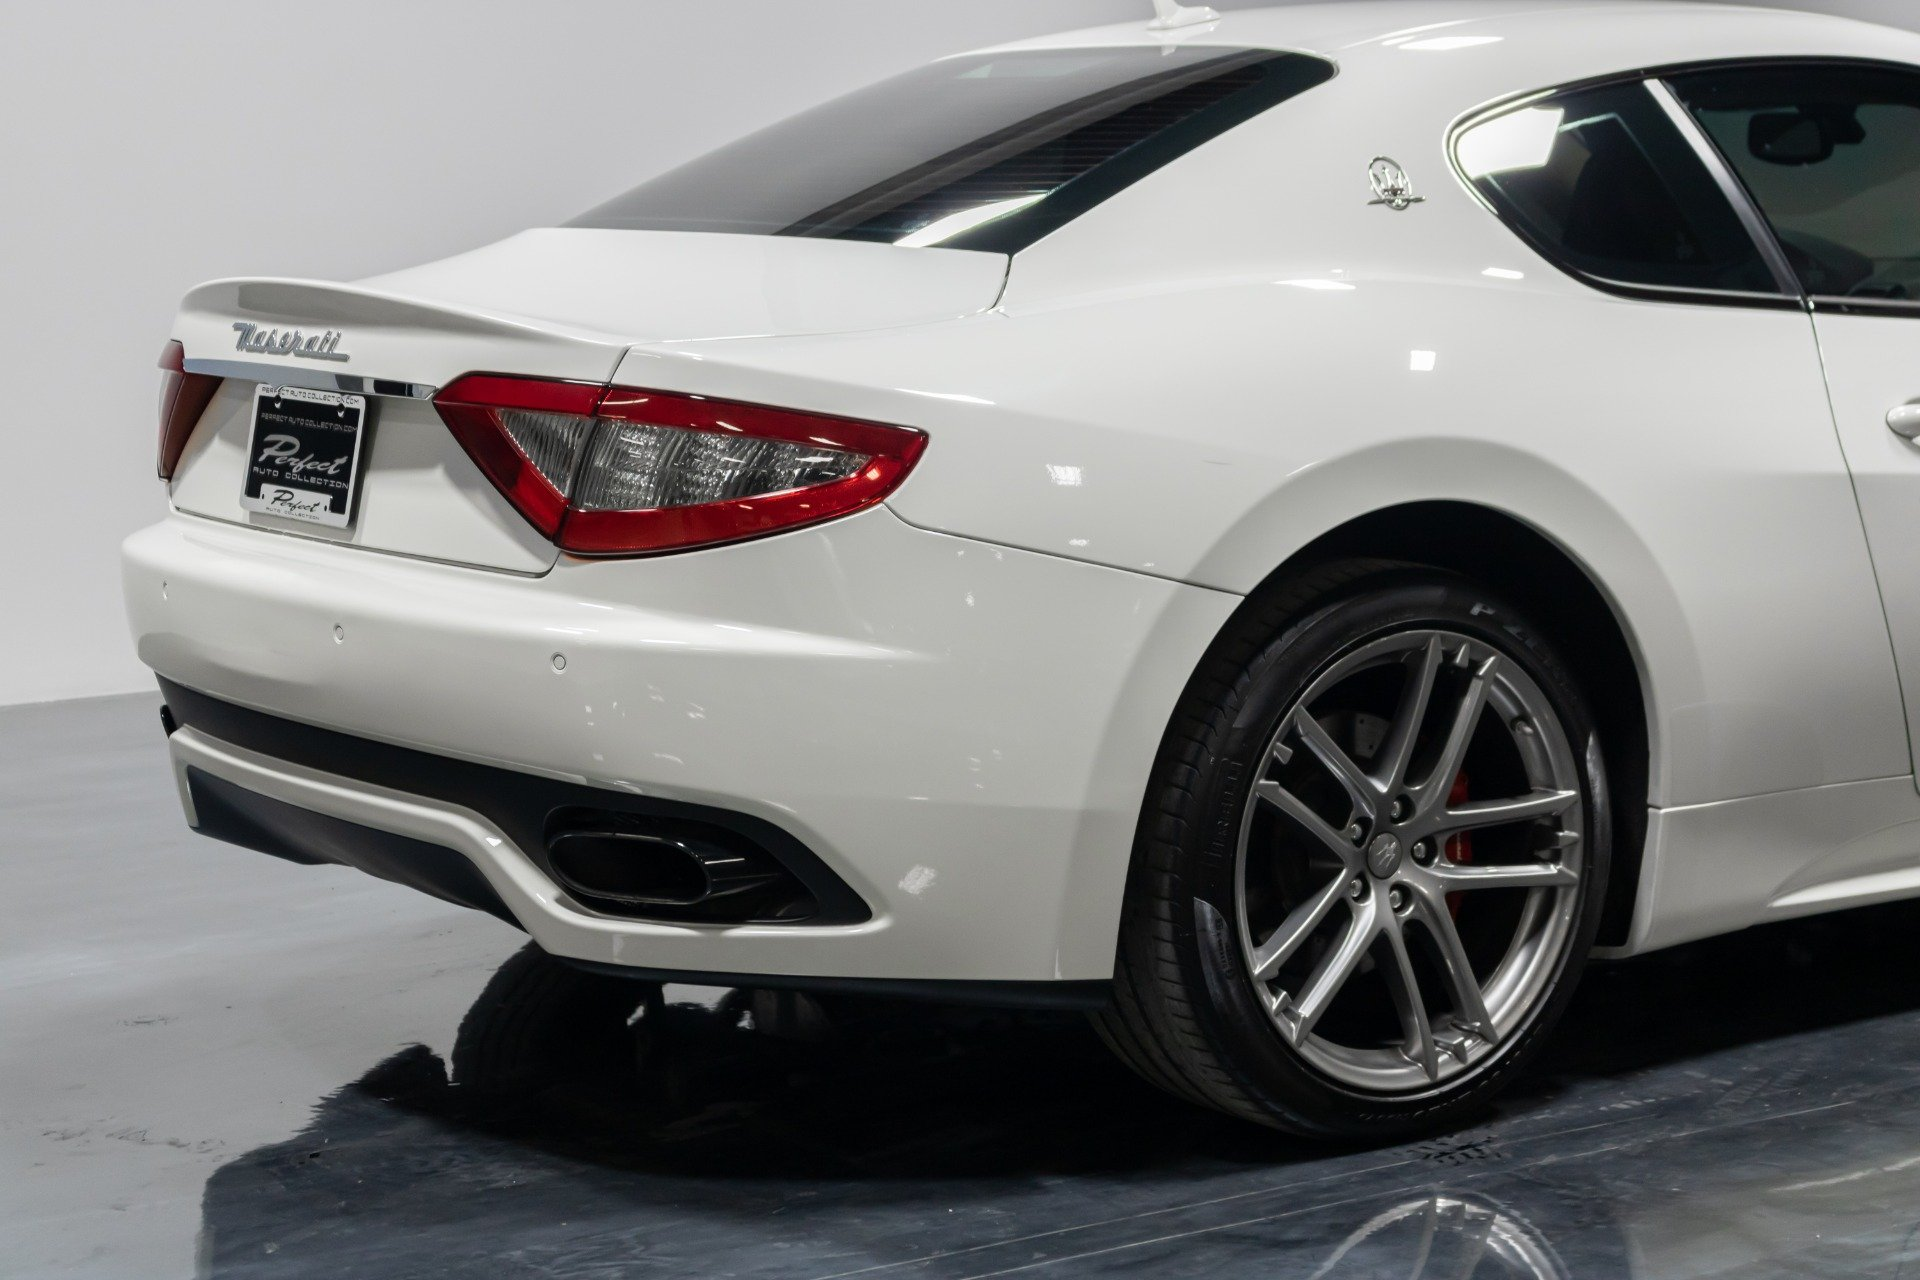 Used 2015 Maserati GranTurismo Sport for sale Sold at Perfect Auto Collection in Akron OH 44310 4